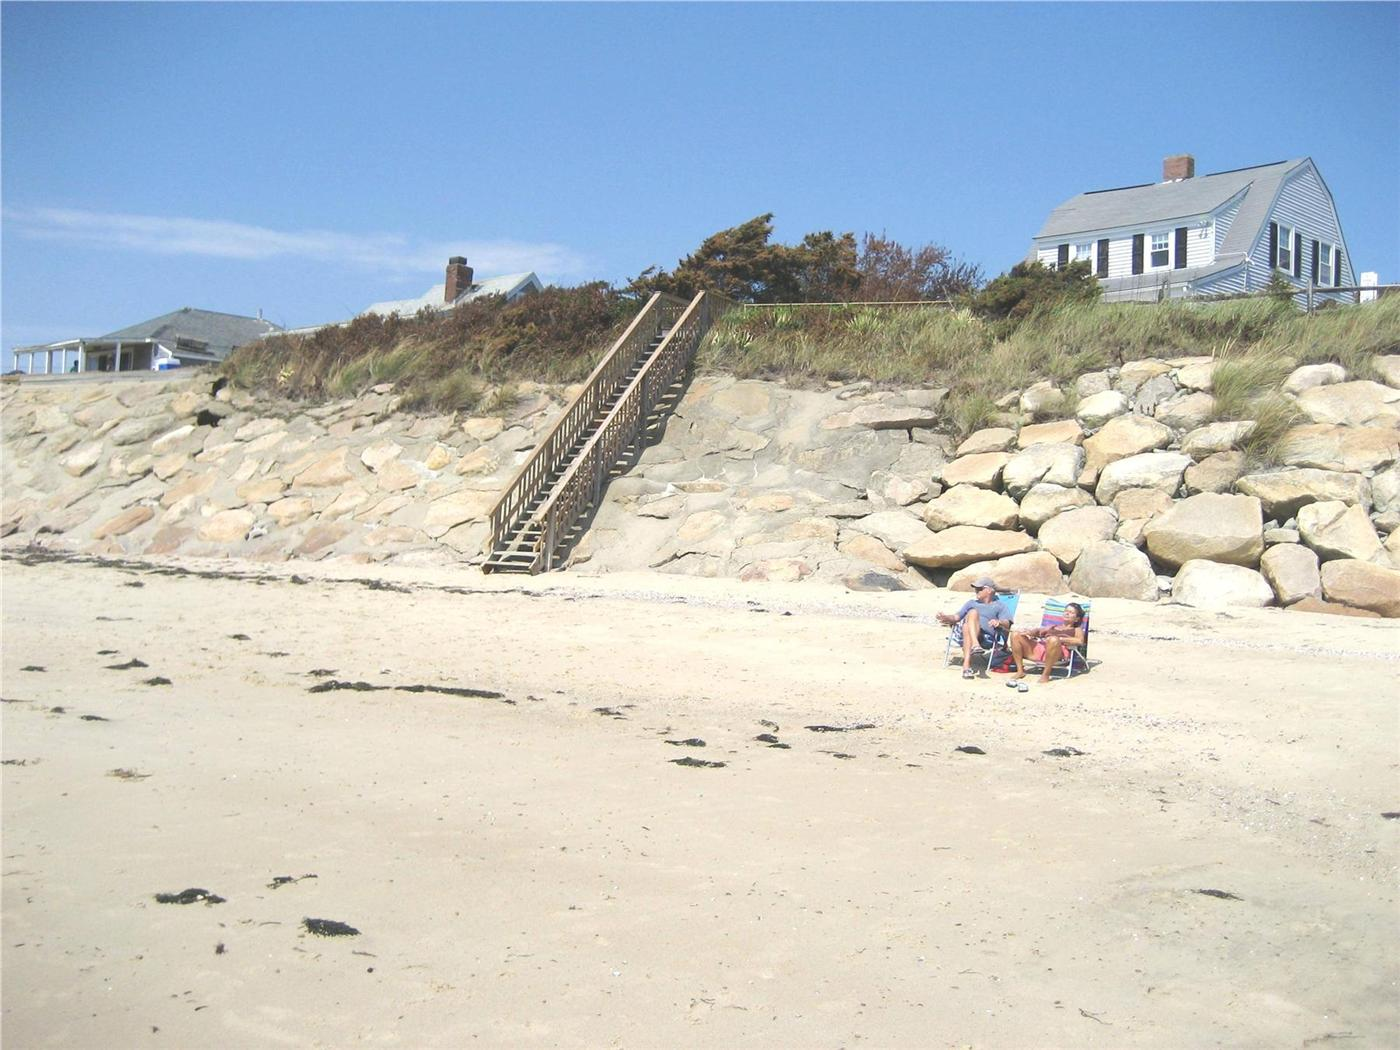 Dennis vacation rental home in cape cod ma 02639 located for Cape cod cabin